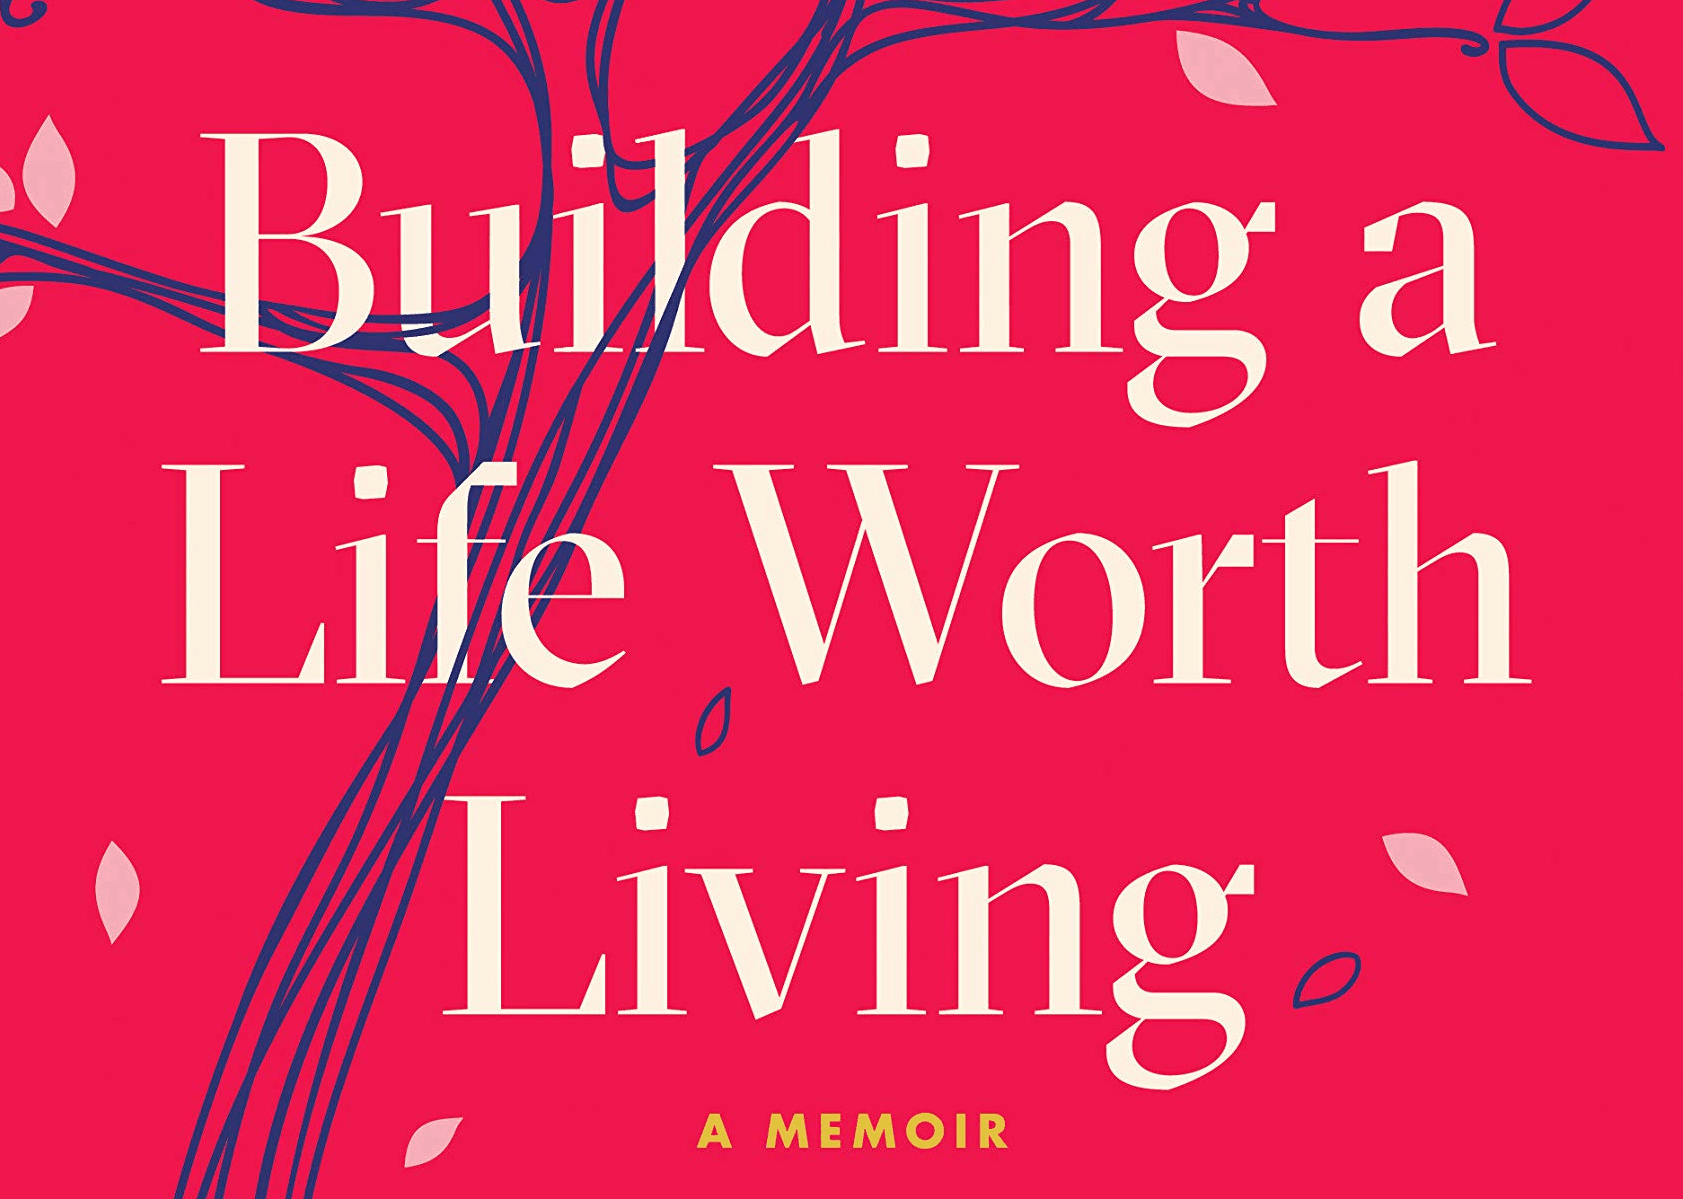 Book cover for building a life worth living